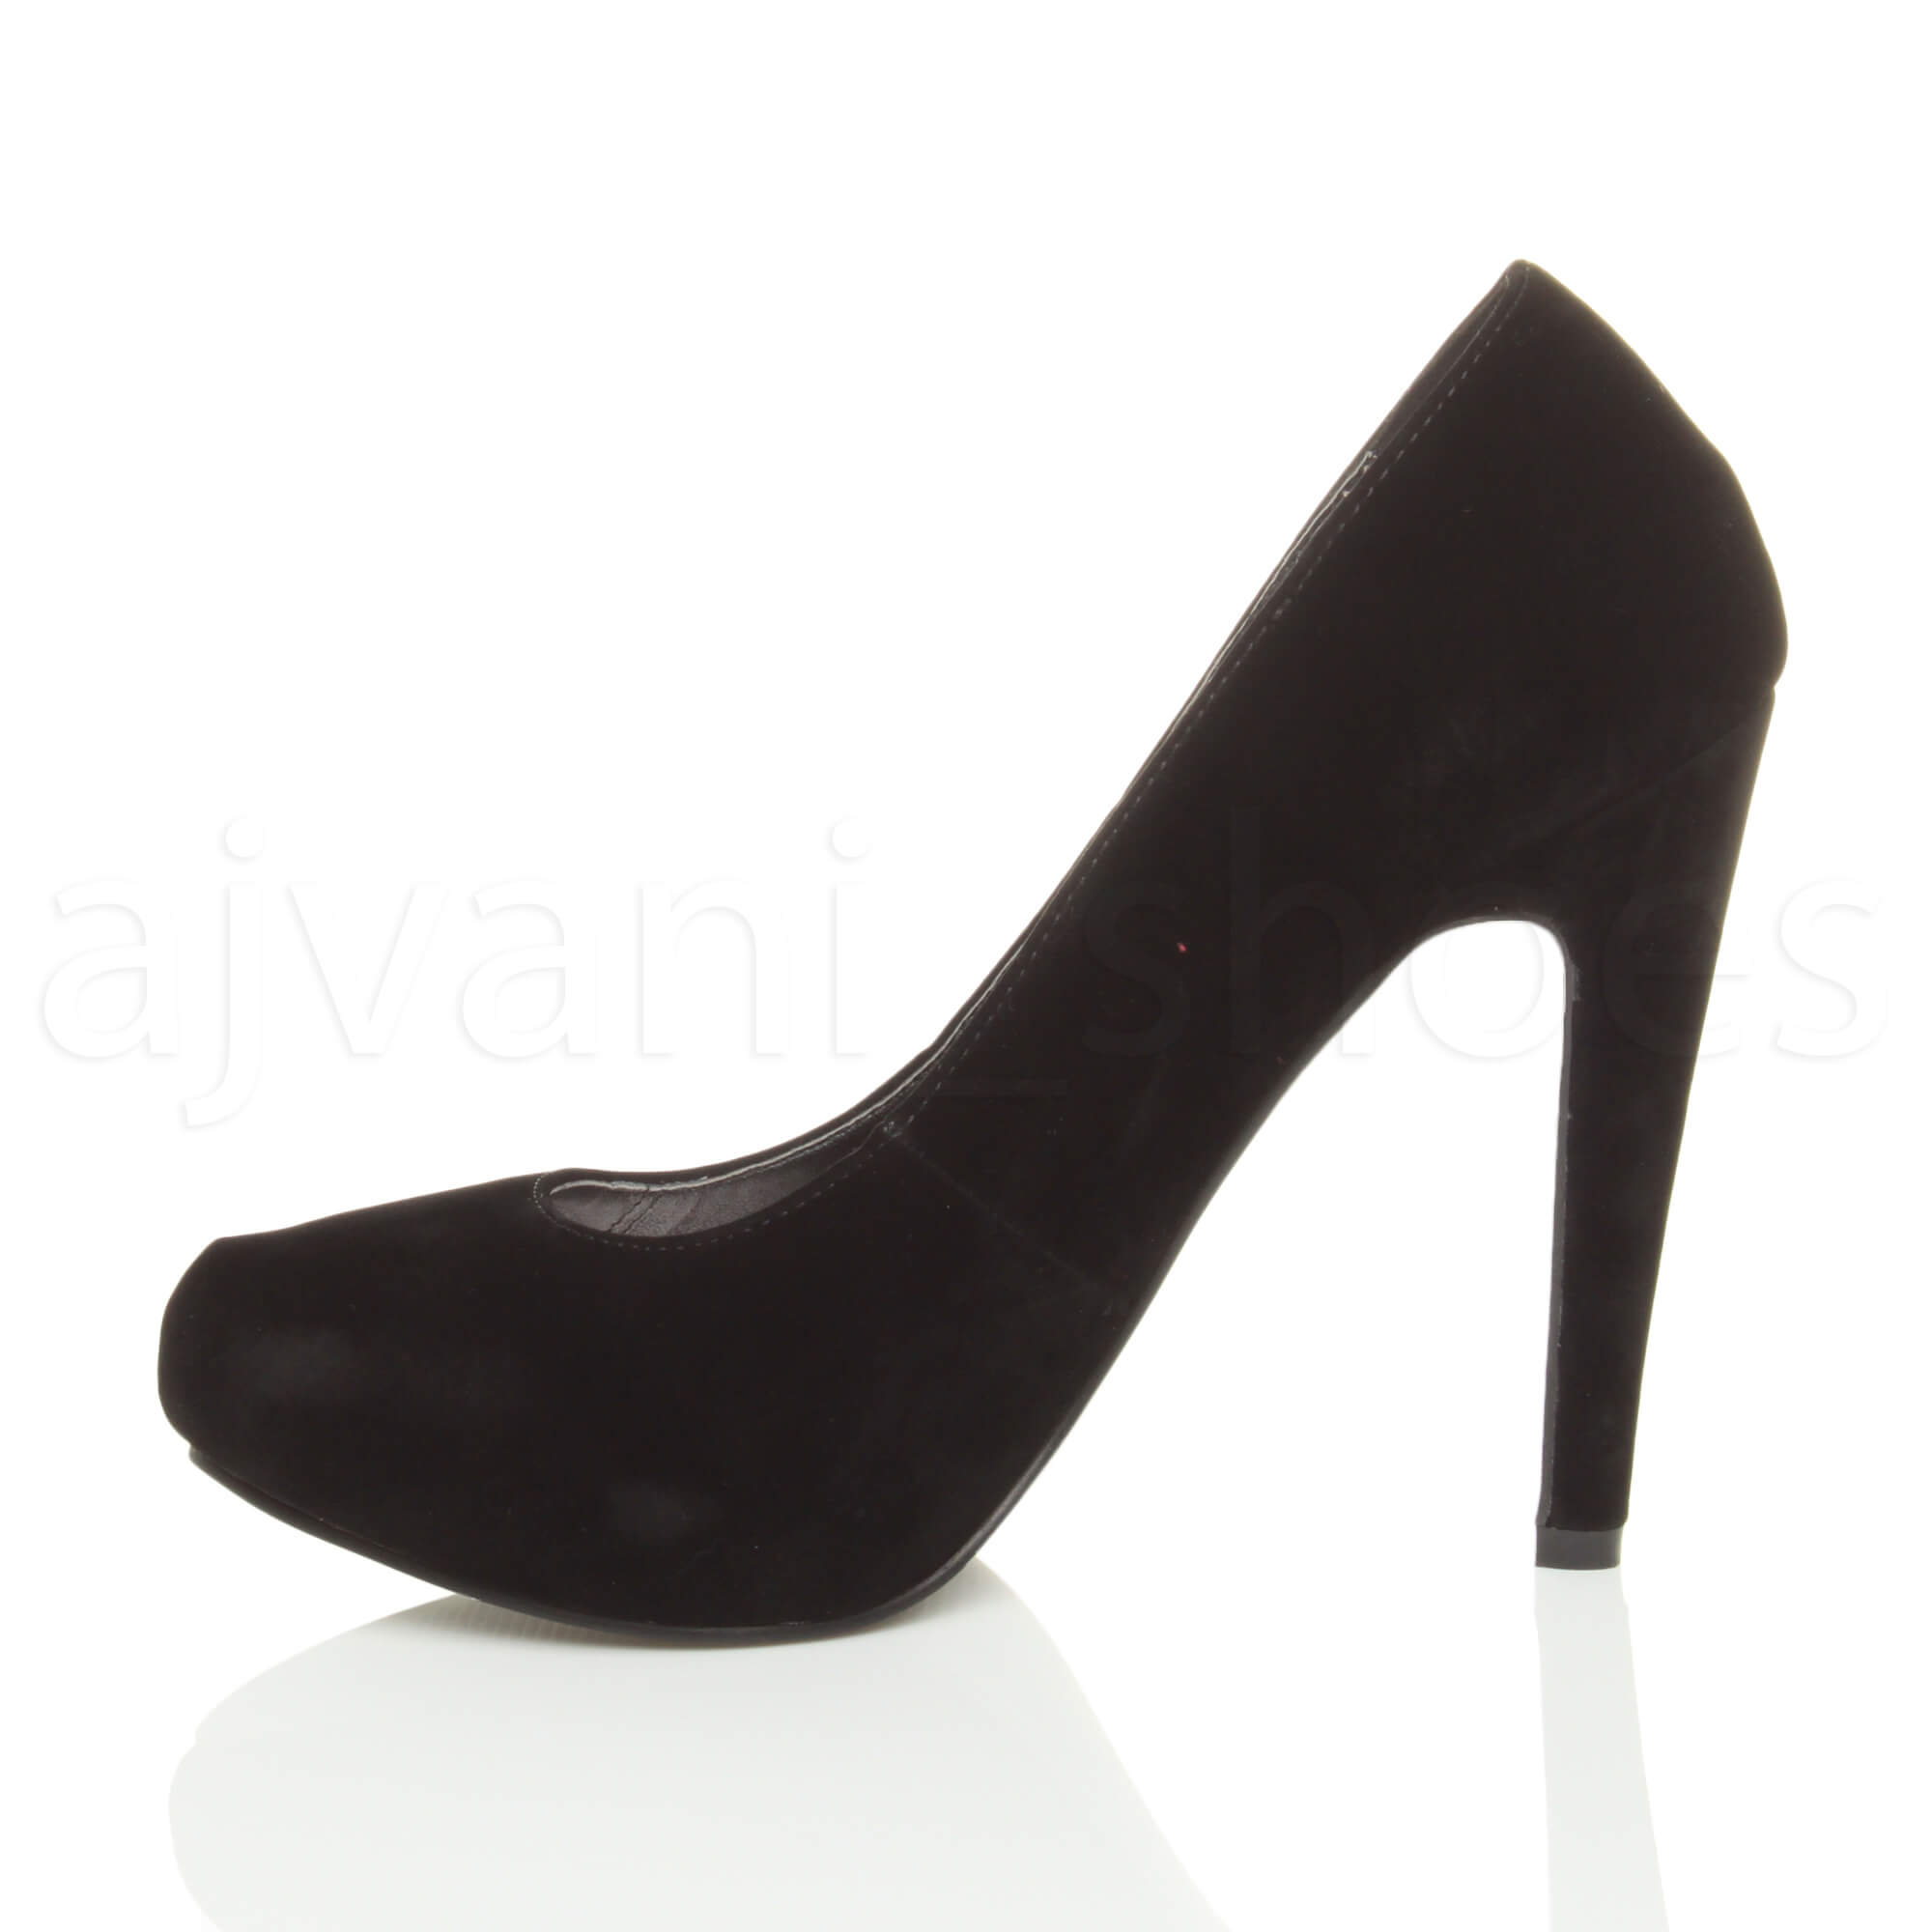 WOMENS-LADIES-HIGH-HEEL-CONCEALED-PLATFORM-COURT-SHOES-PARTY-PROM-PUMPS-SIZE thumbnail 9